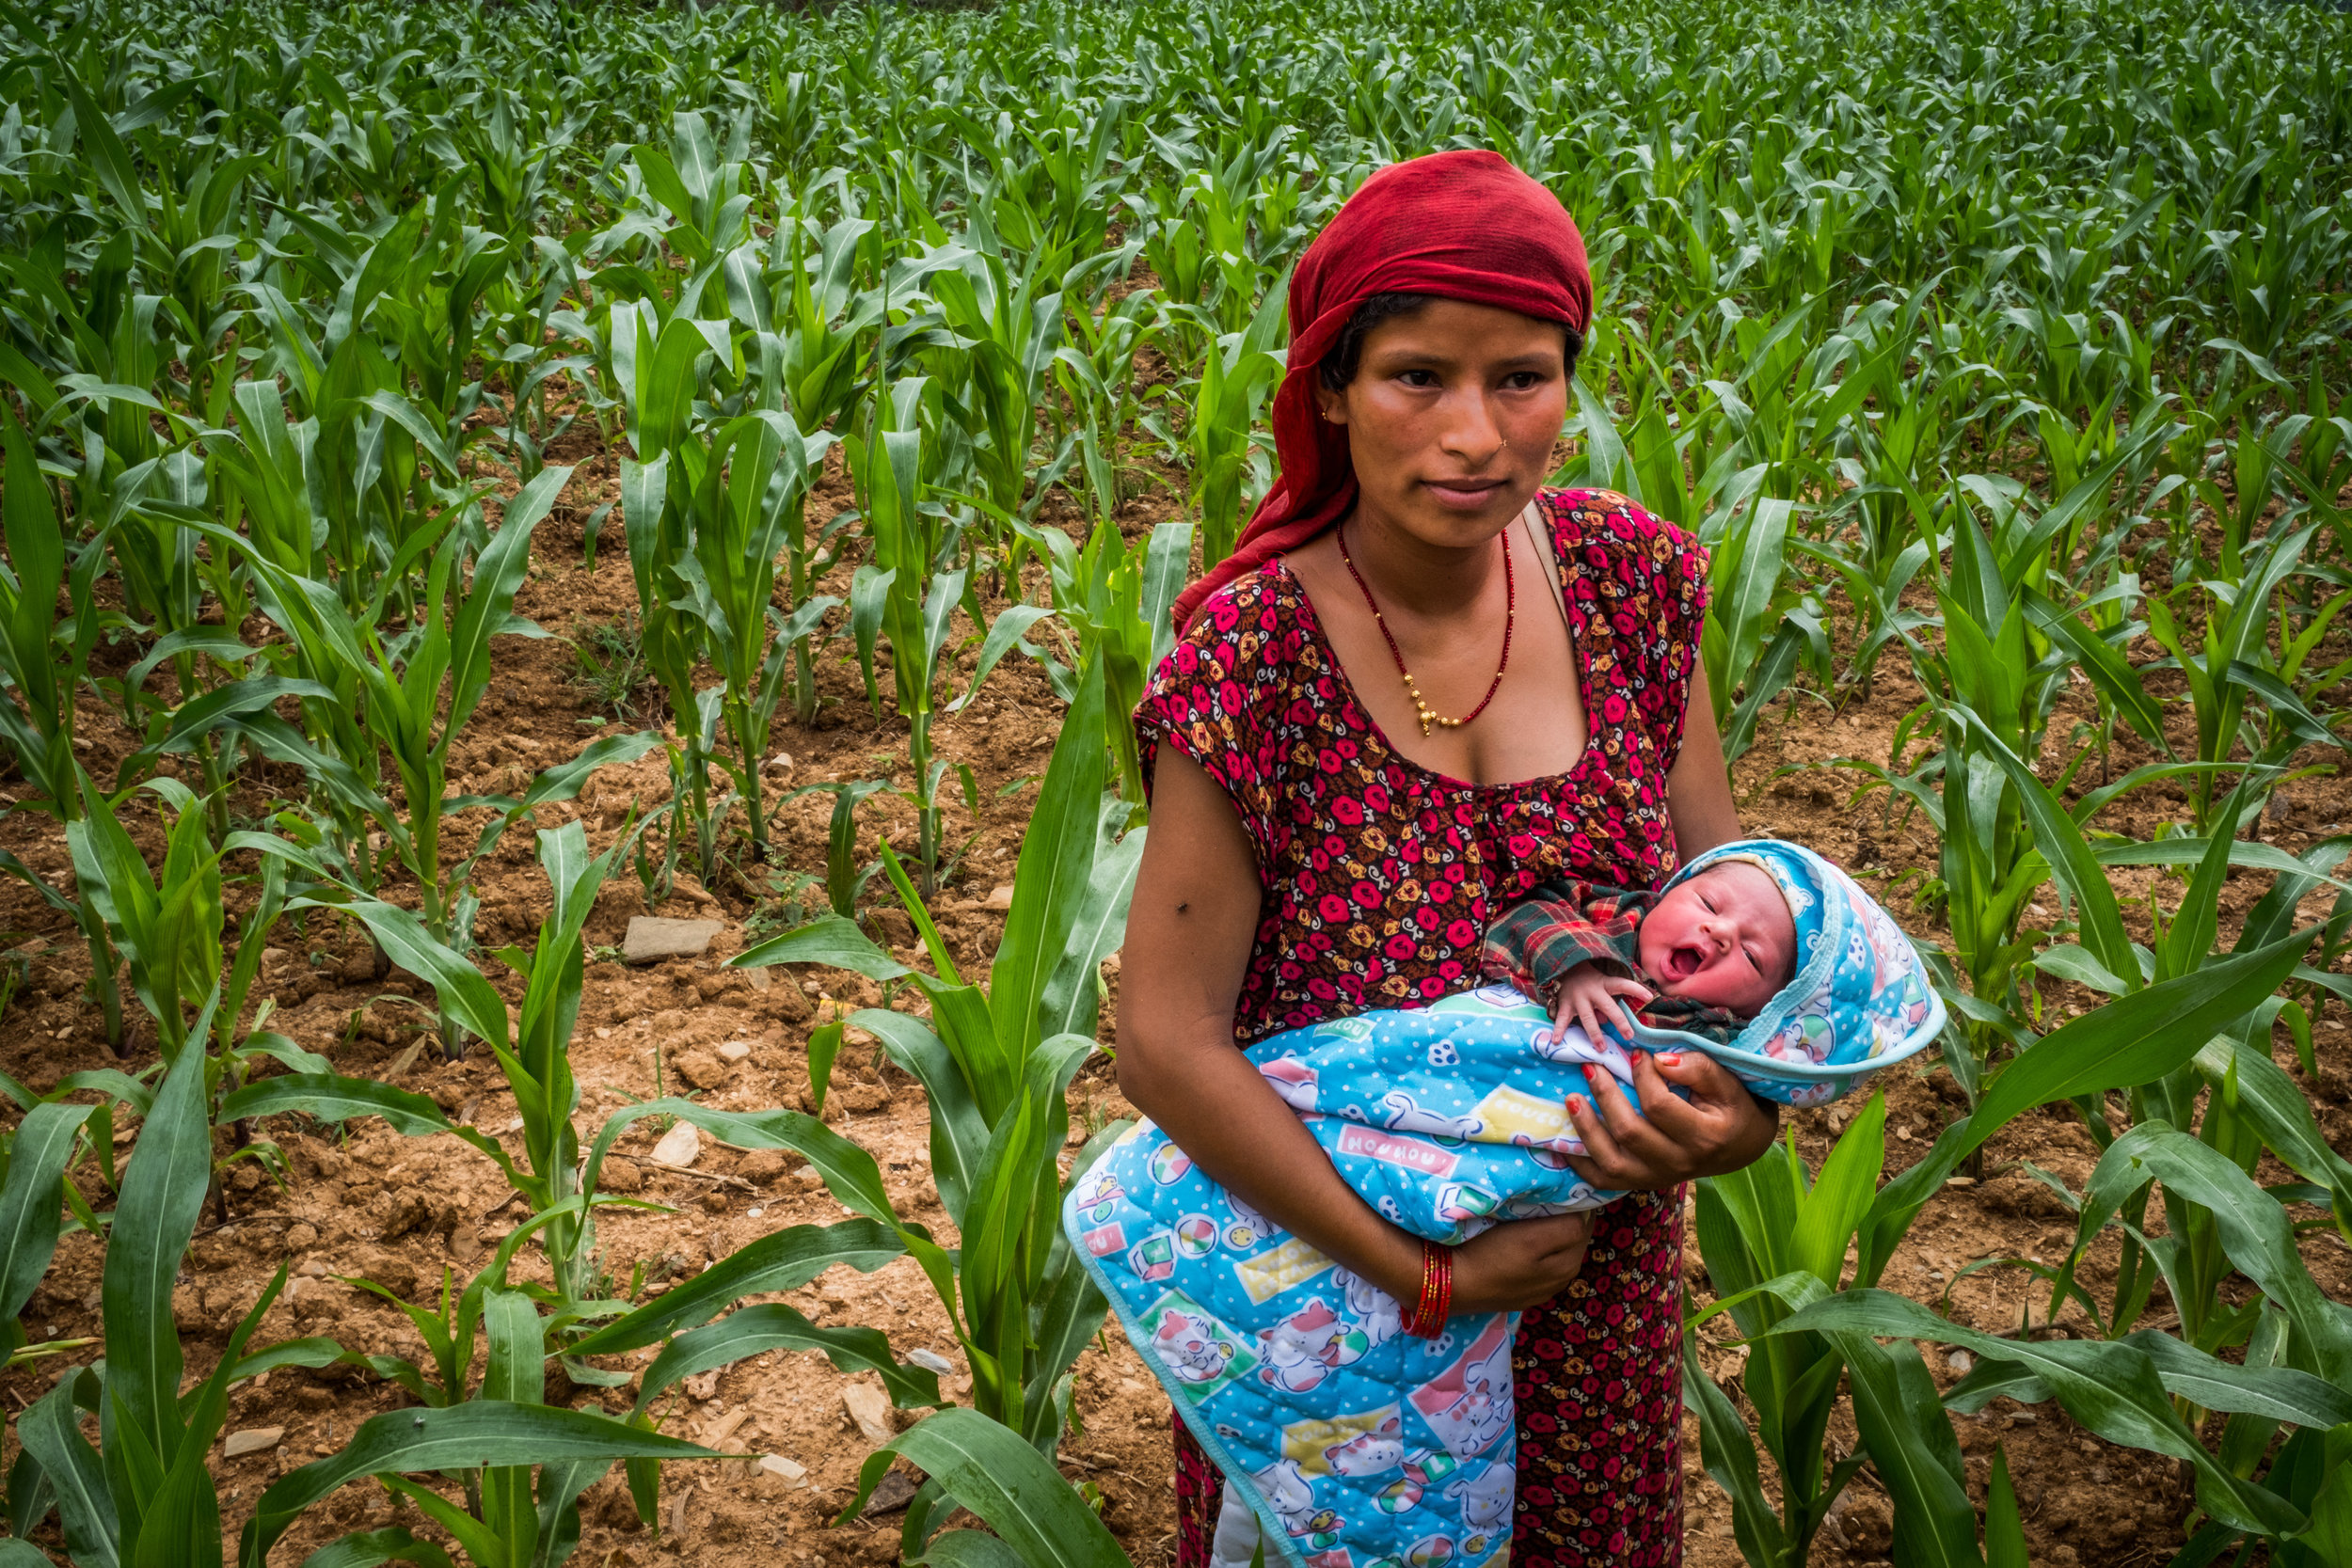 Indira Khatri, 23, with her second child. She lives is Thokarpa, Nepal an hour's walk from a small clinic and 4-5 hours drive on rough dirt roads from the nearest real medical facility.